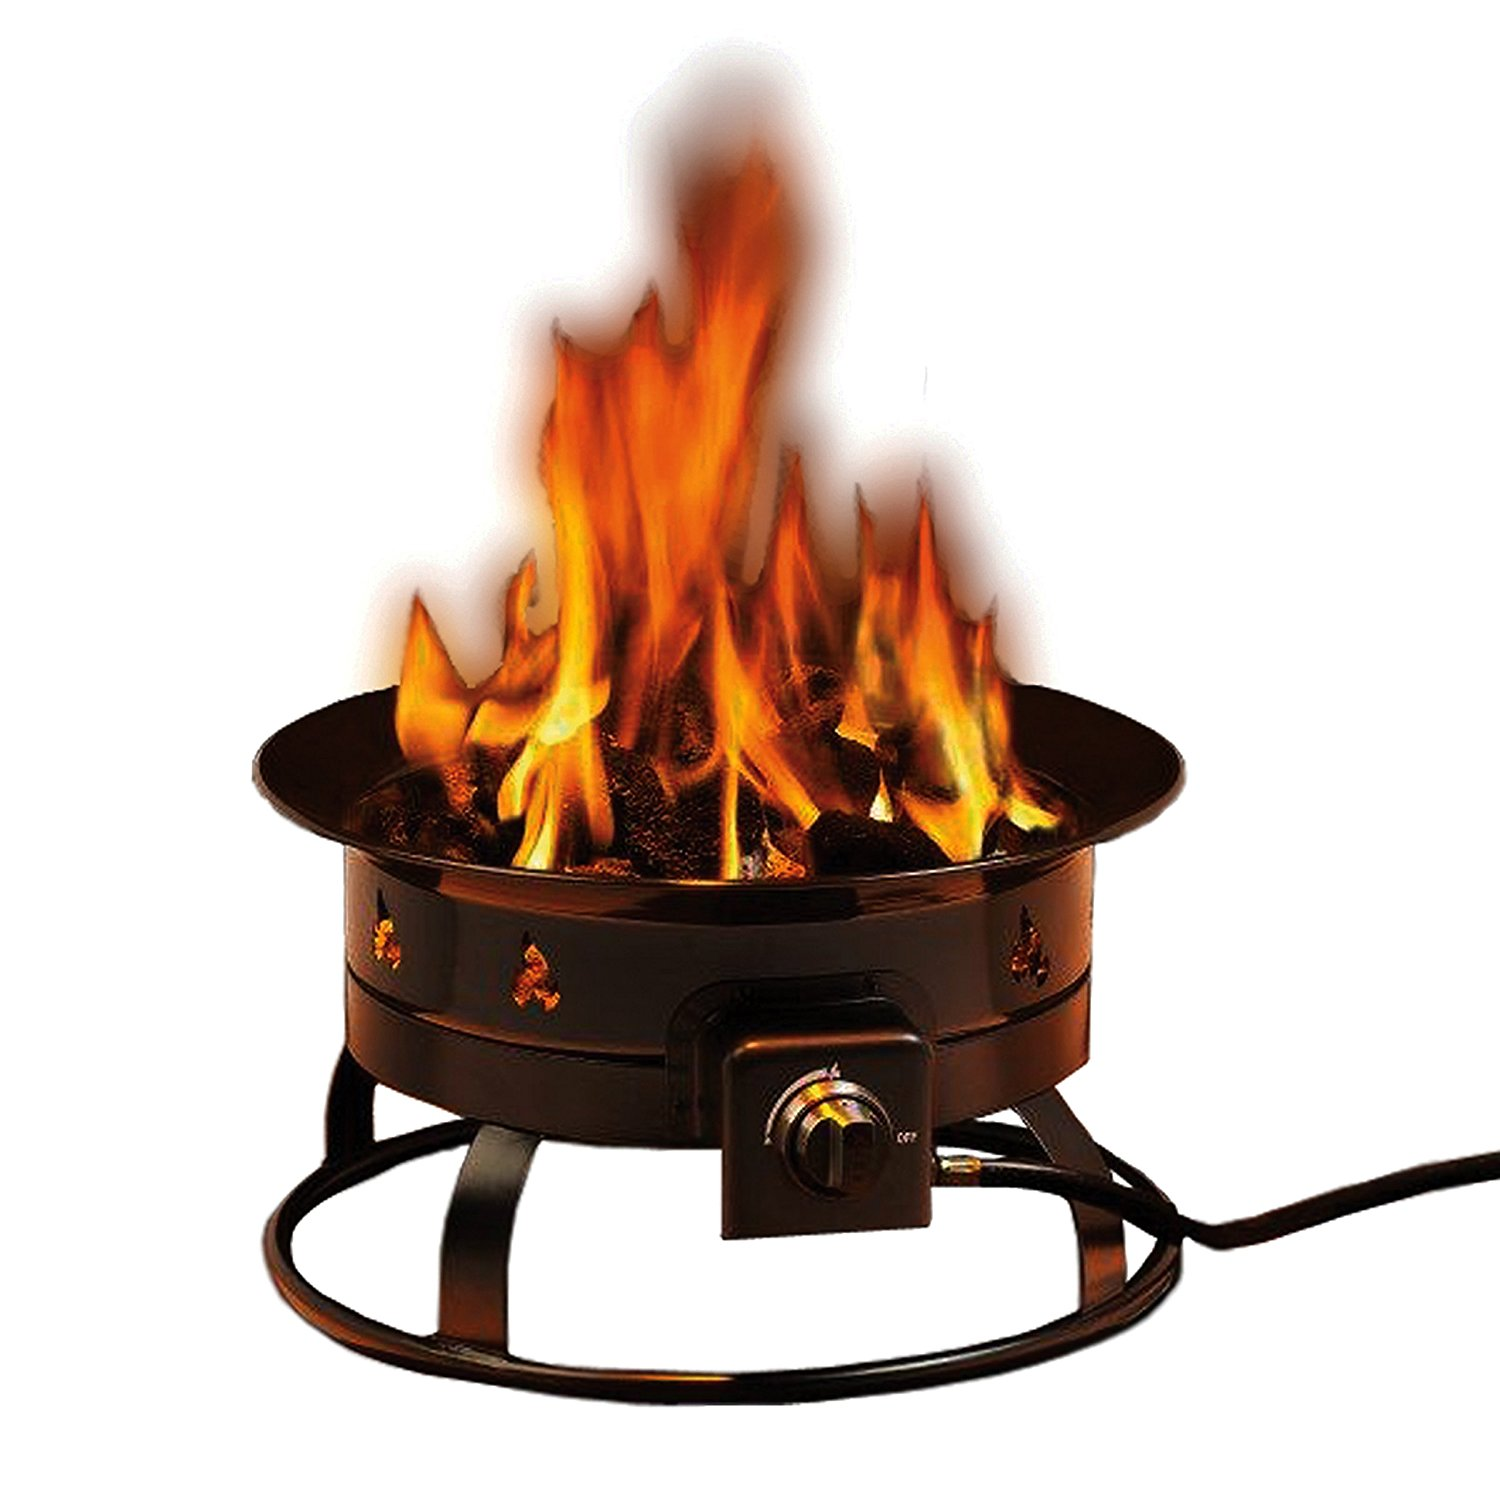 Heininger Propane Outdoor Fire Pit